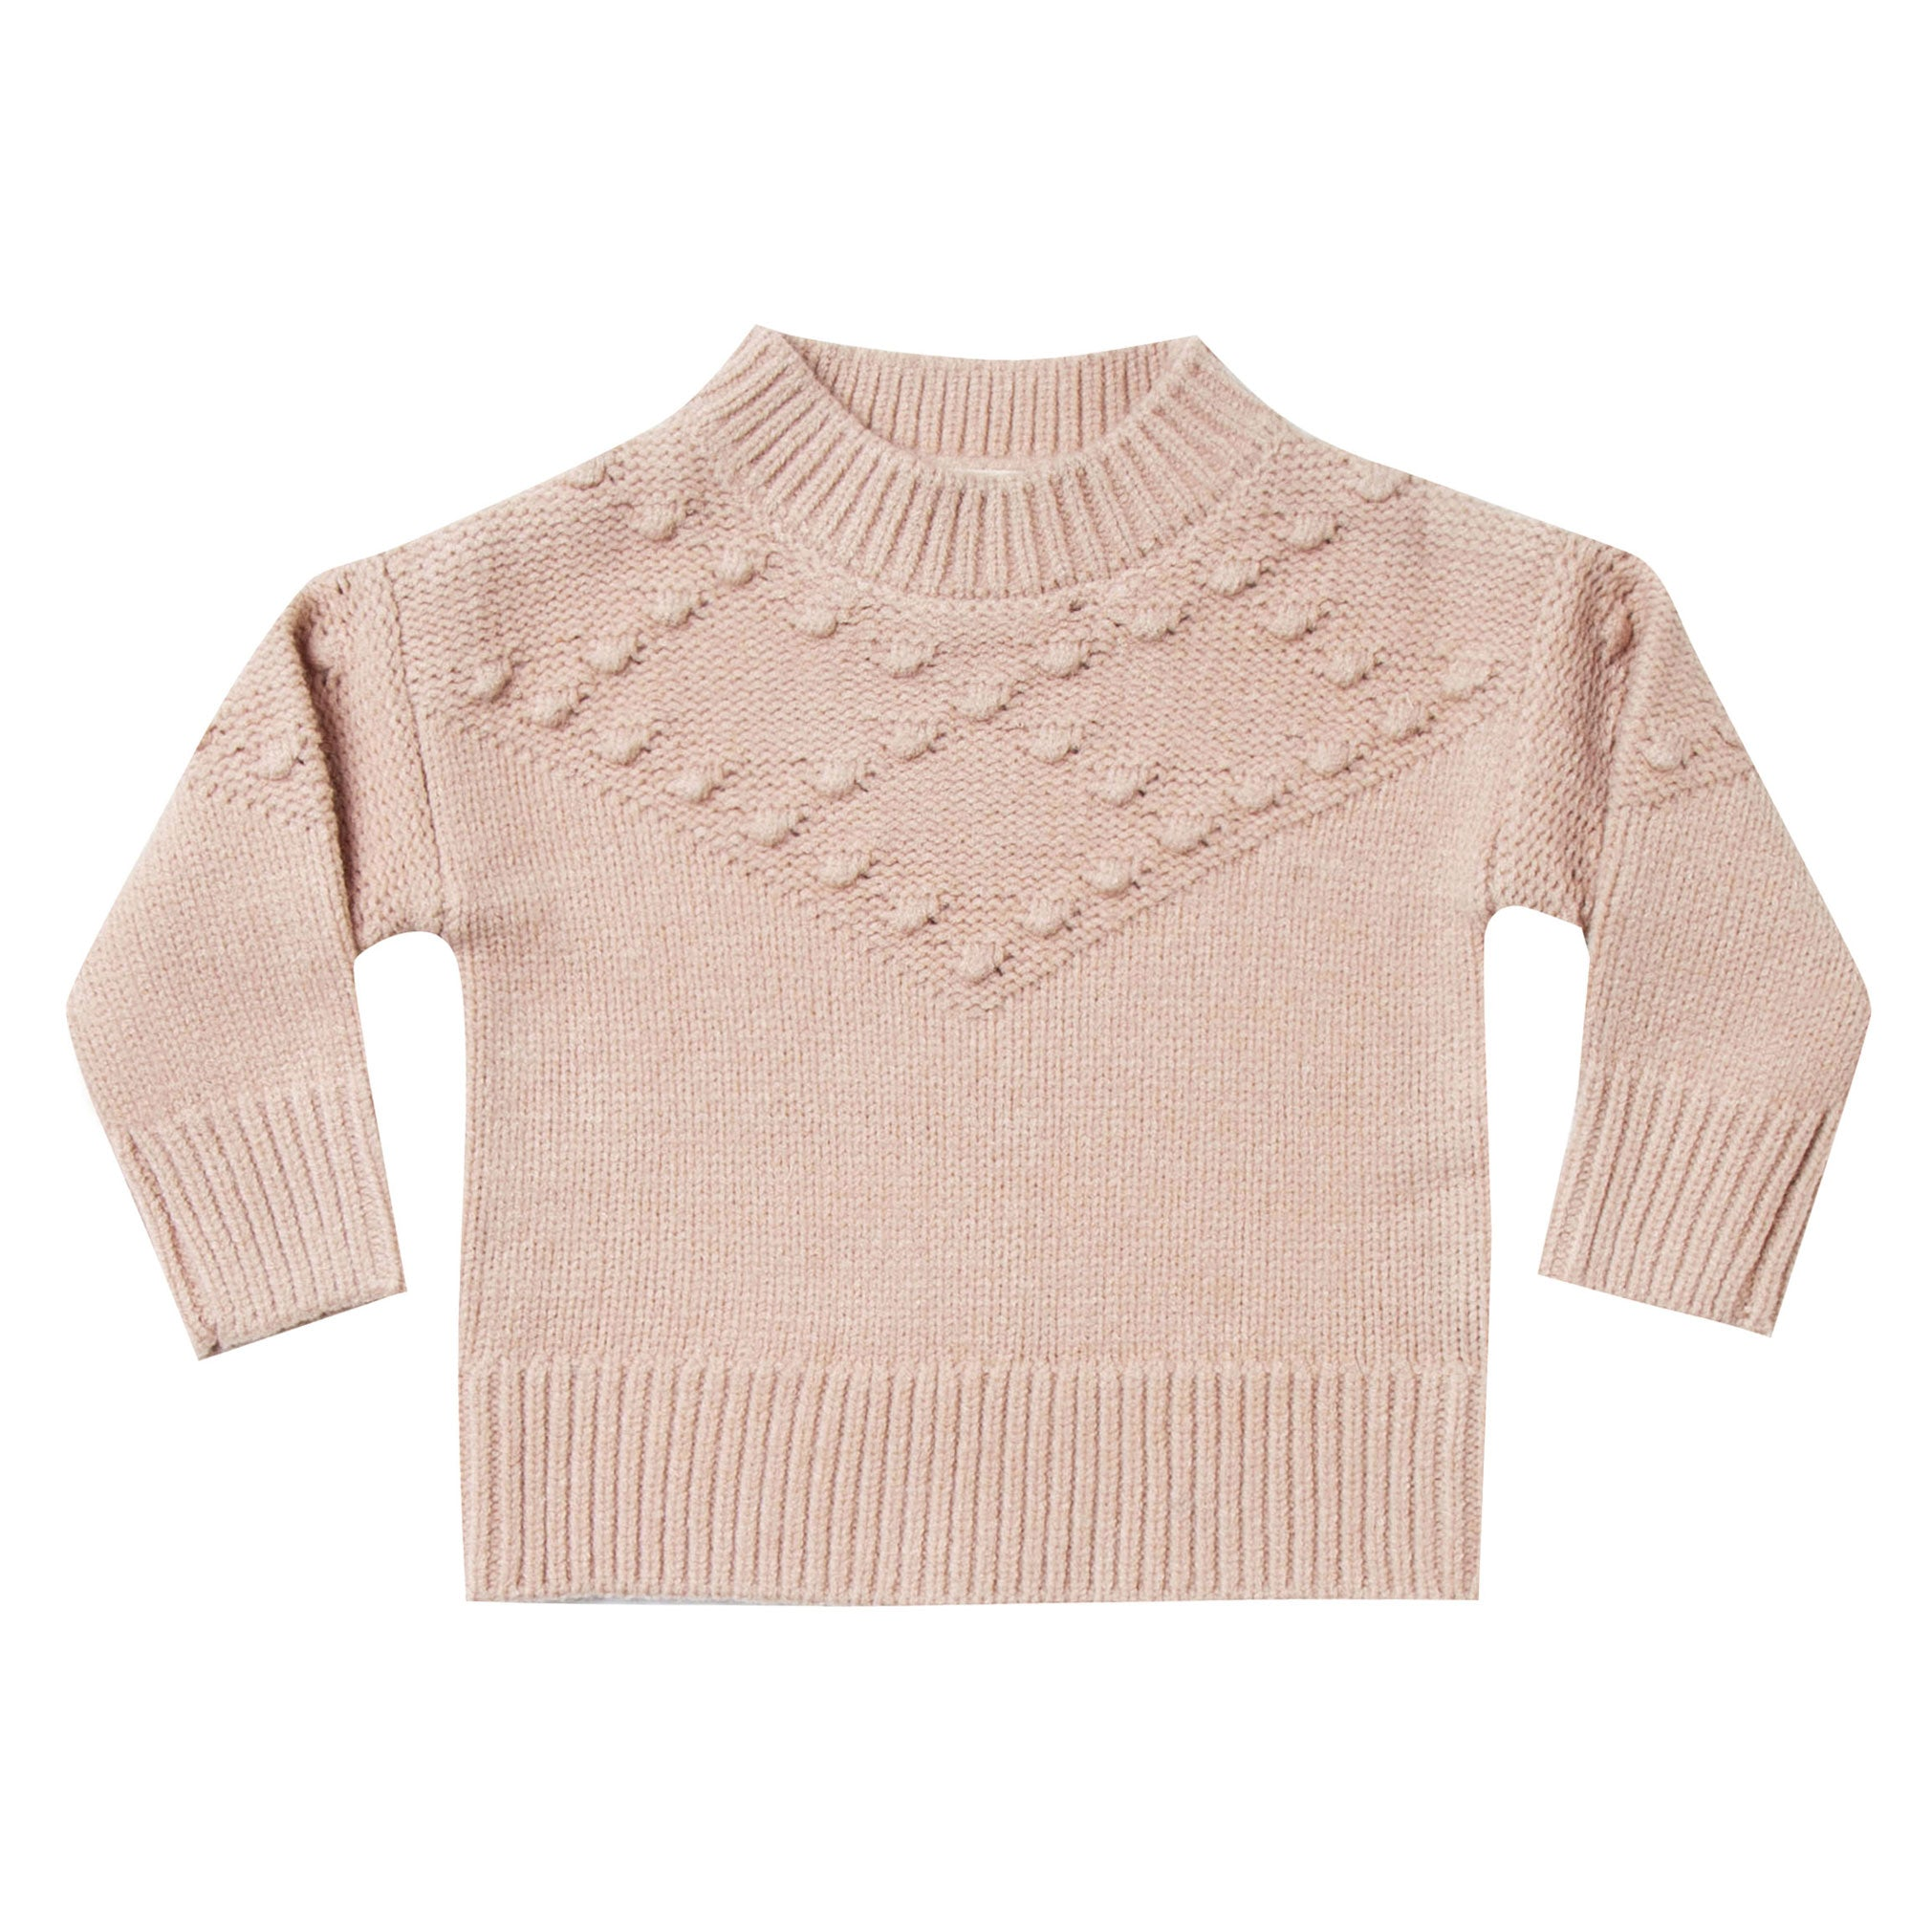 Rylee and Cru Rose Bobble Sweater